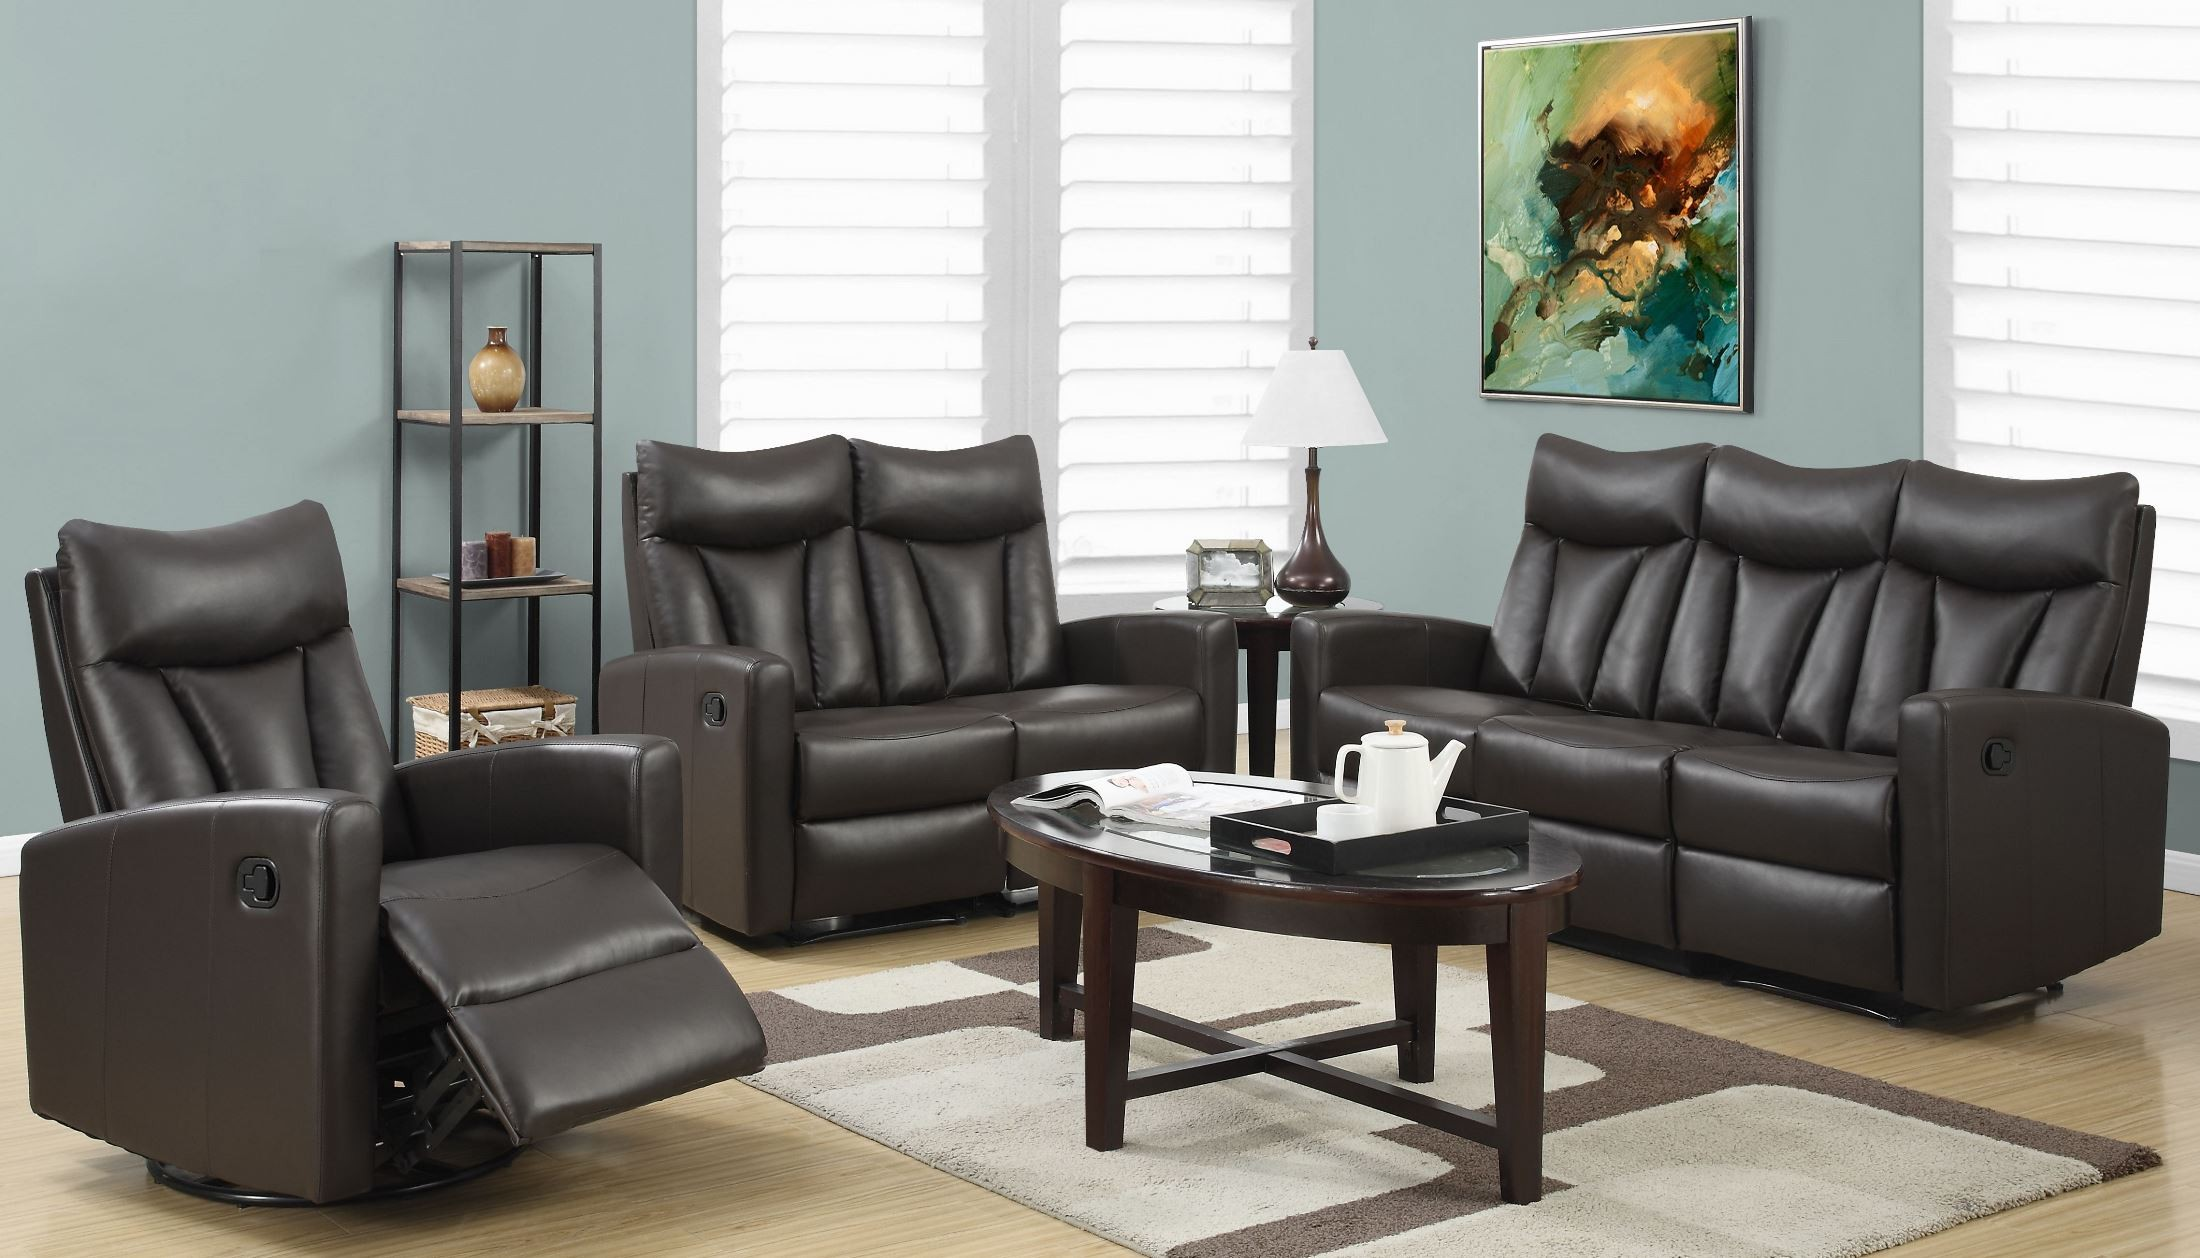 87br 3 brown bonded leather reclining living room set